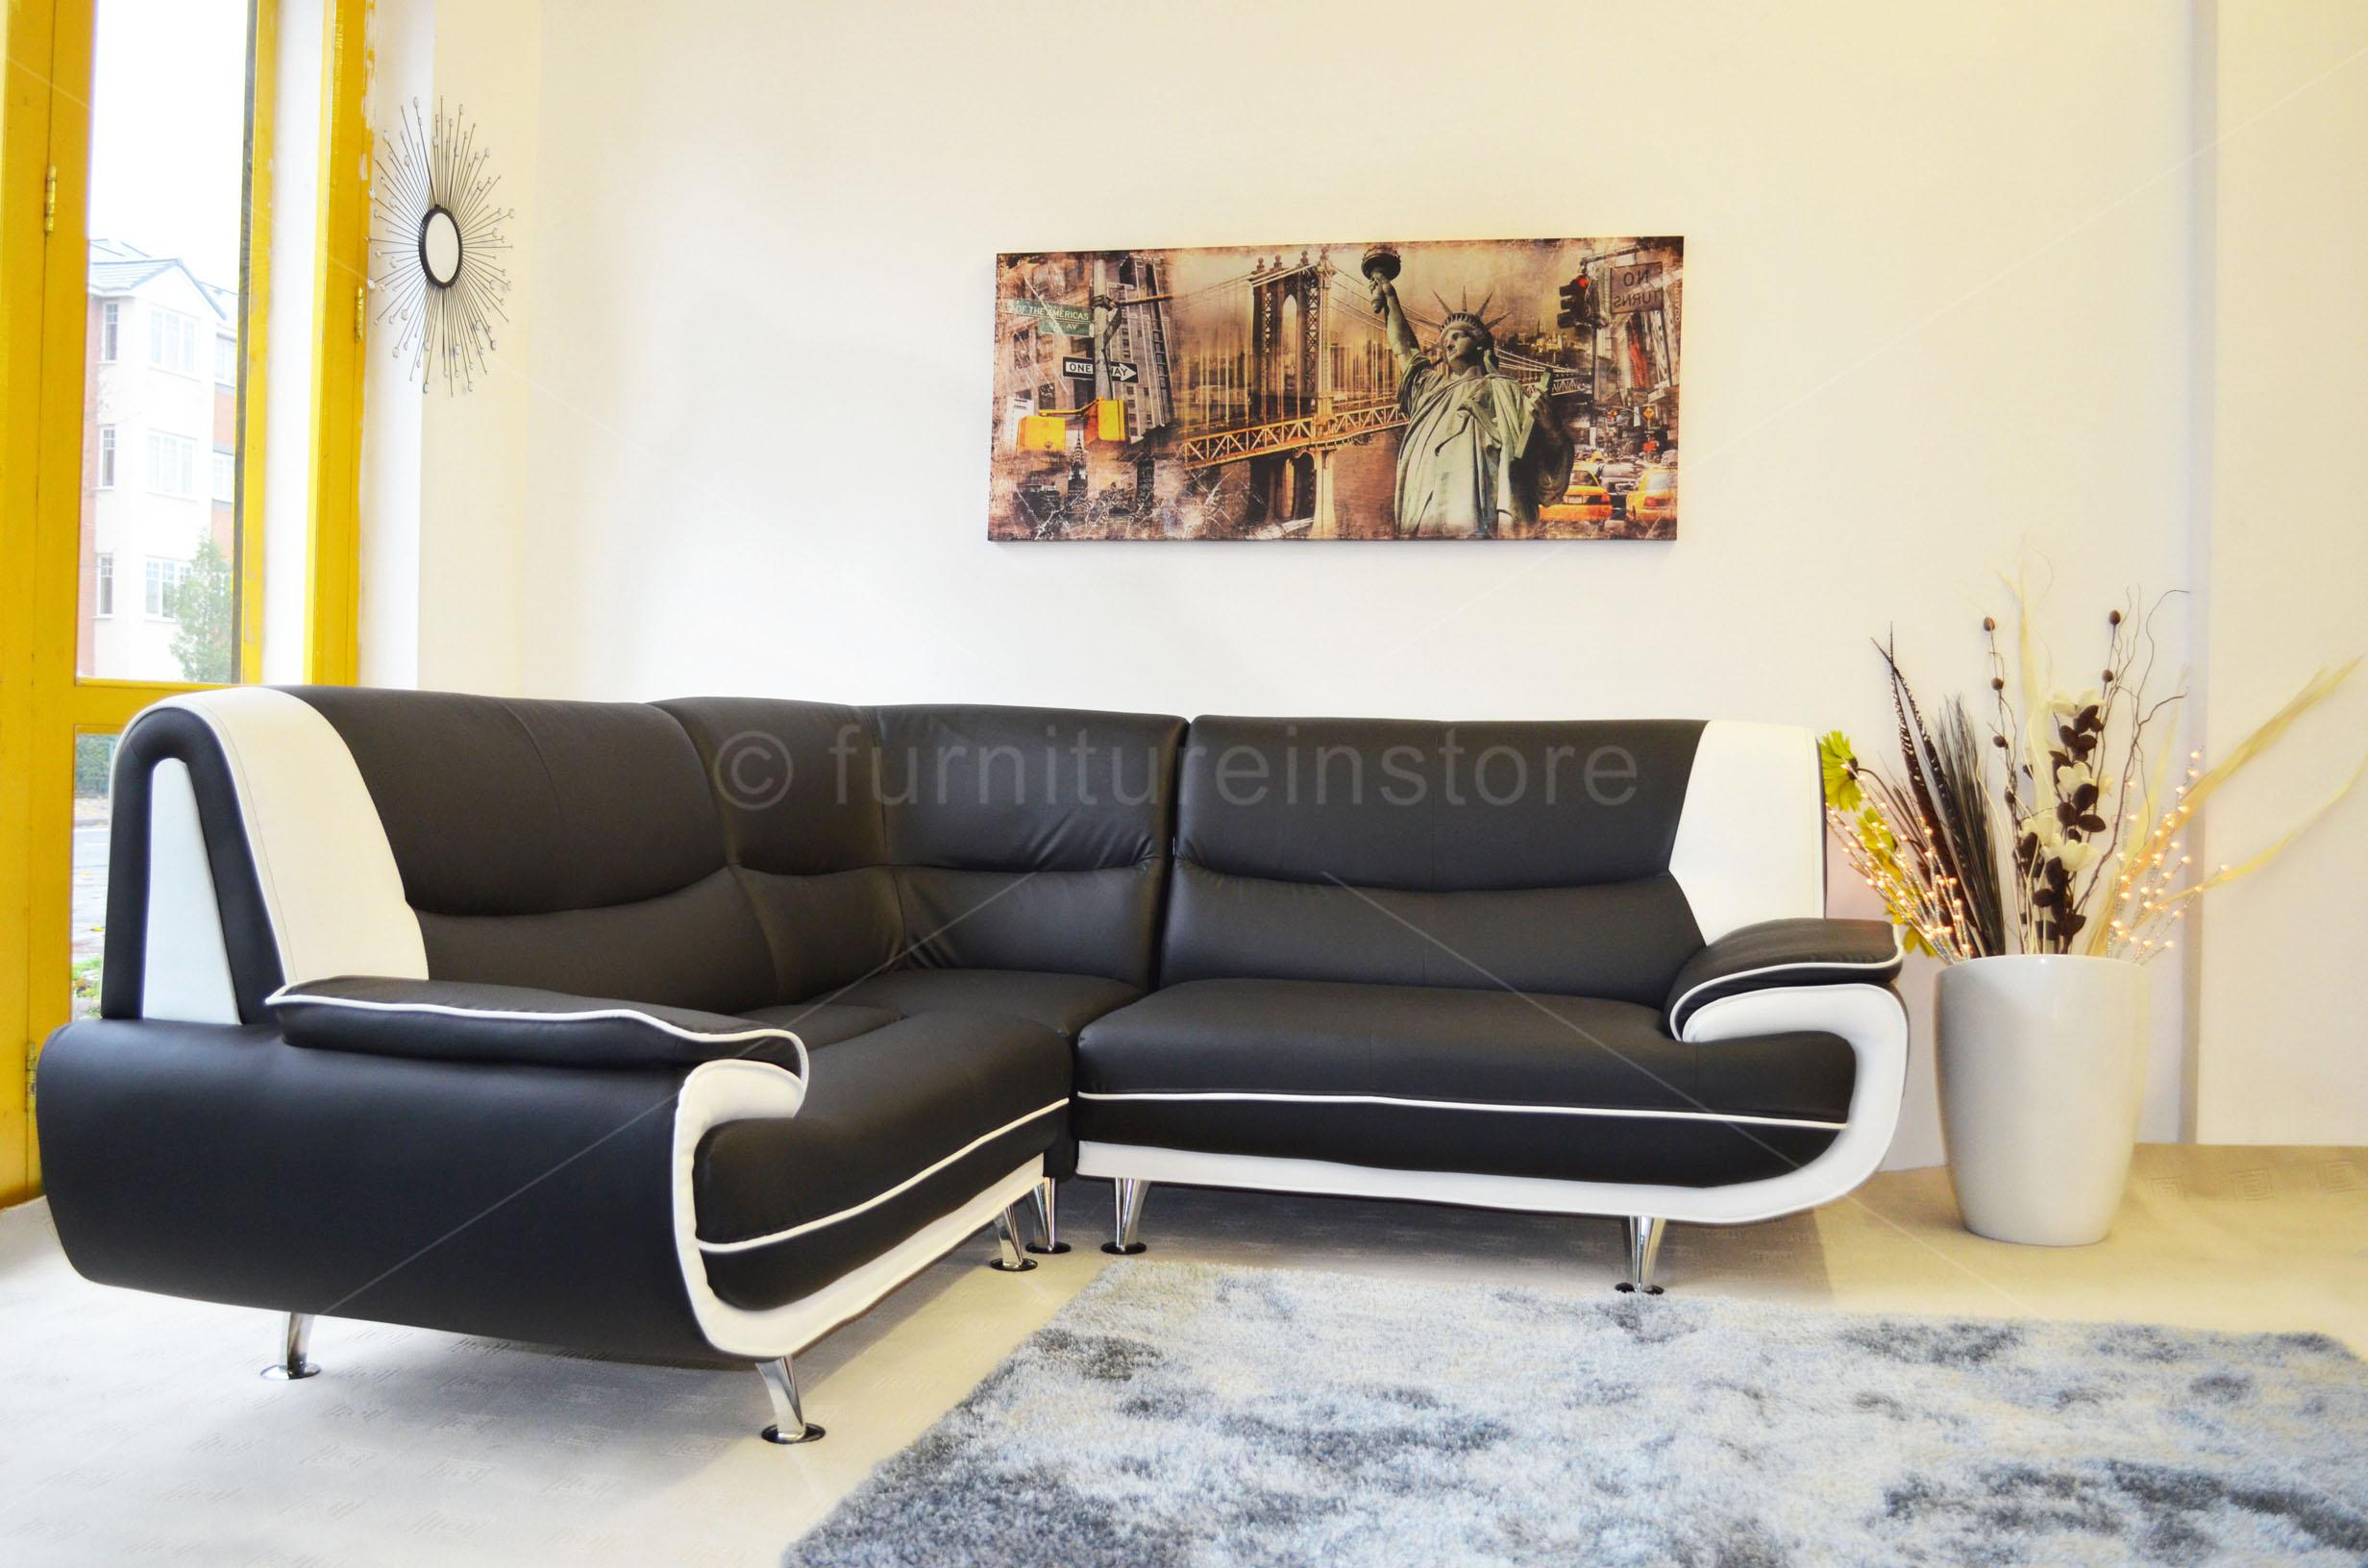 Sofa On Sale Ebay Details About Faux Leather Corner Sofa Sofa Passero Corner Sofas Setttee On Sale In The Uk